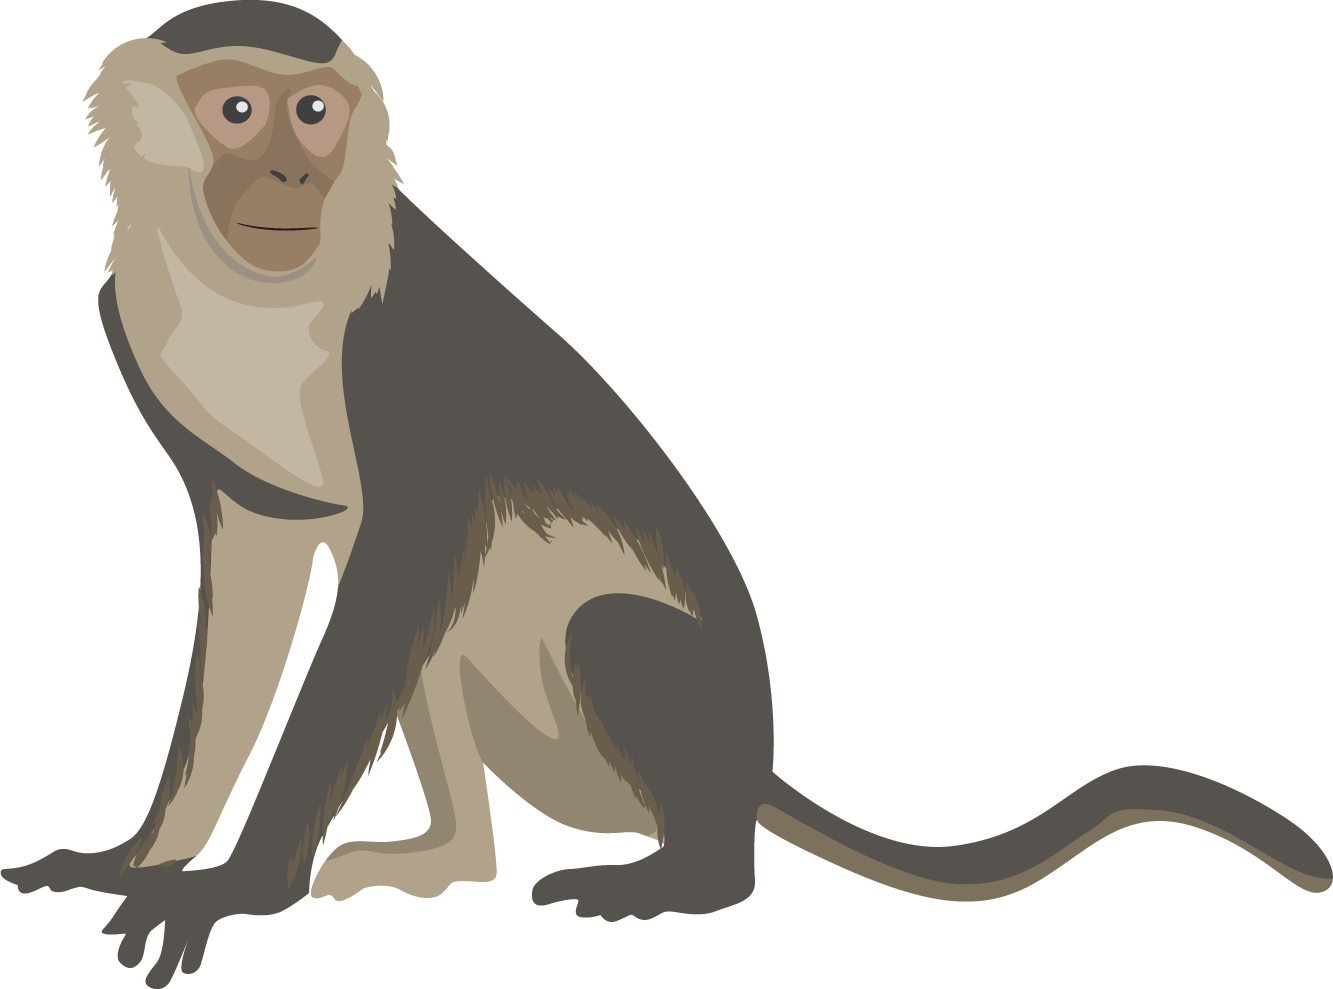 monkey png transparent images png only #19152